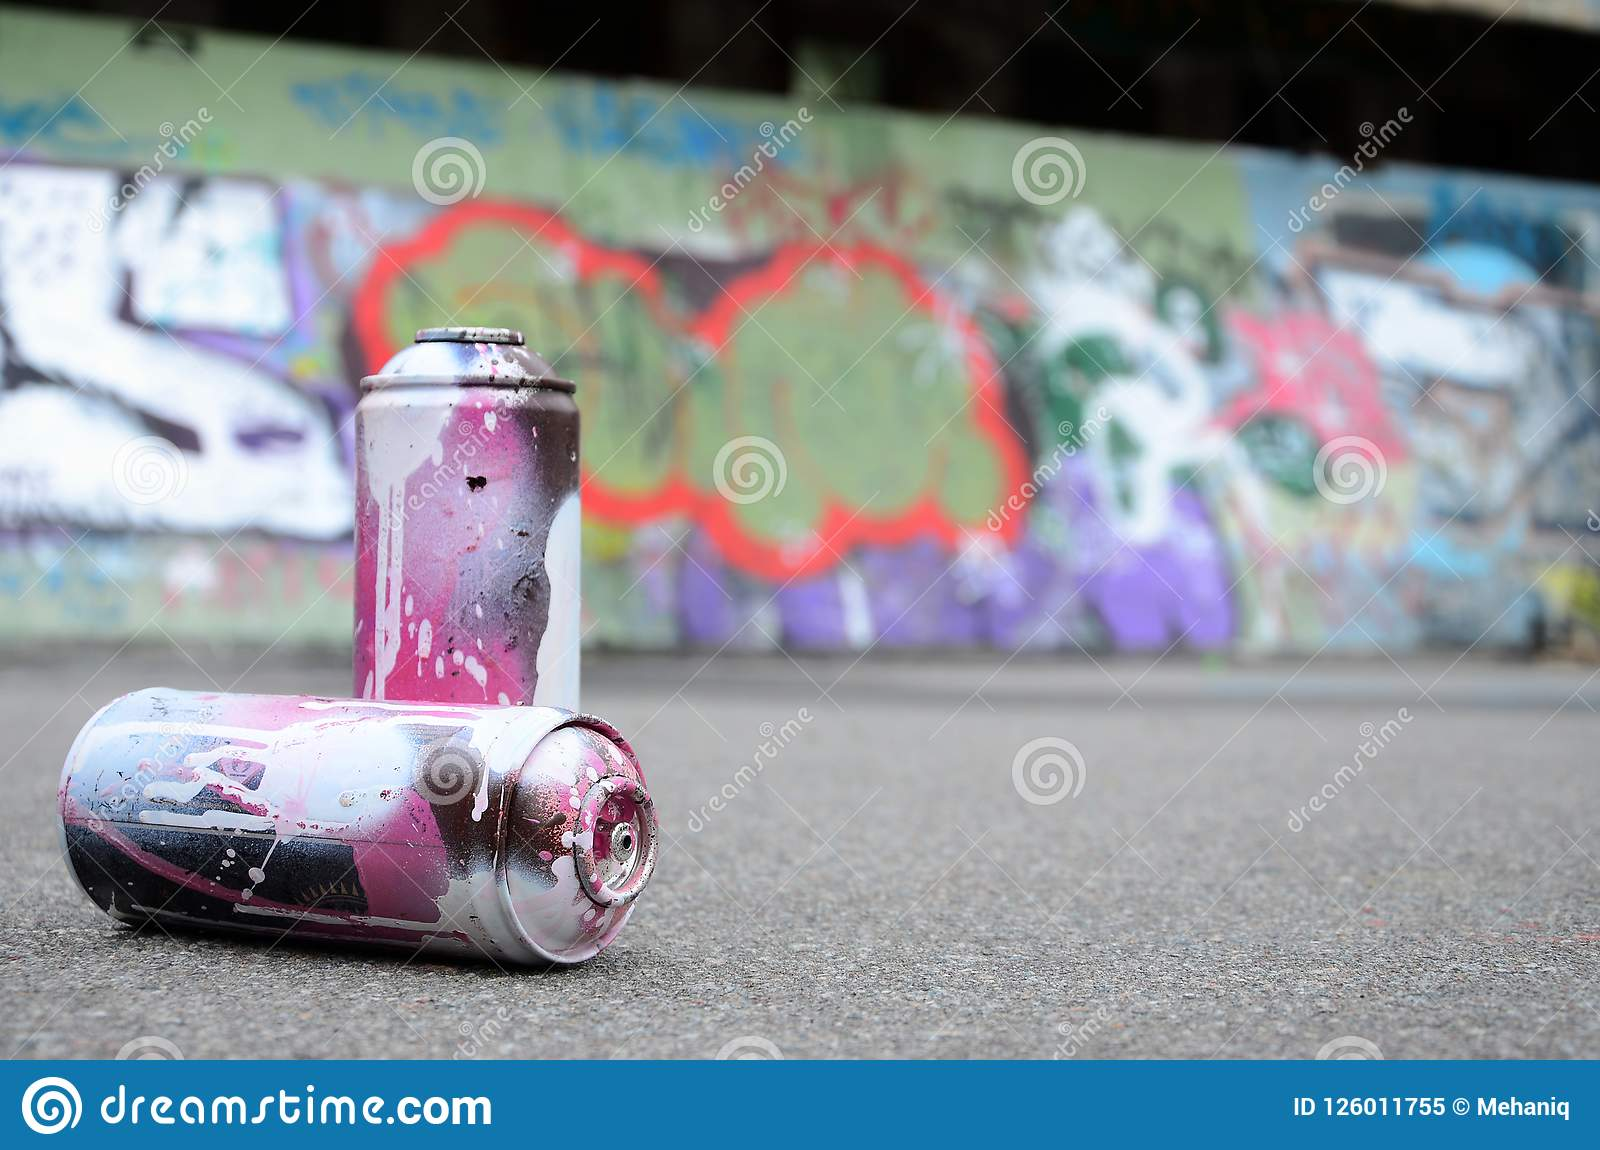 A few used spray cans with pink and white paint lie on the asphalt against the background of a painted wall in colorful graffiti